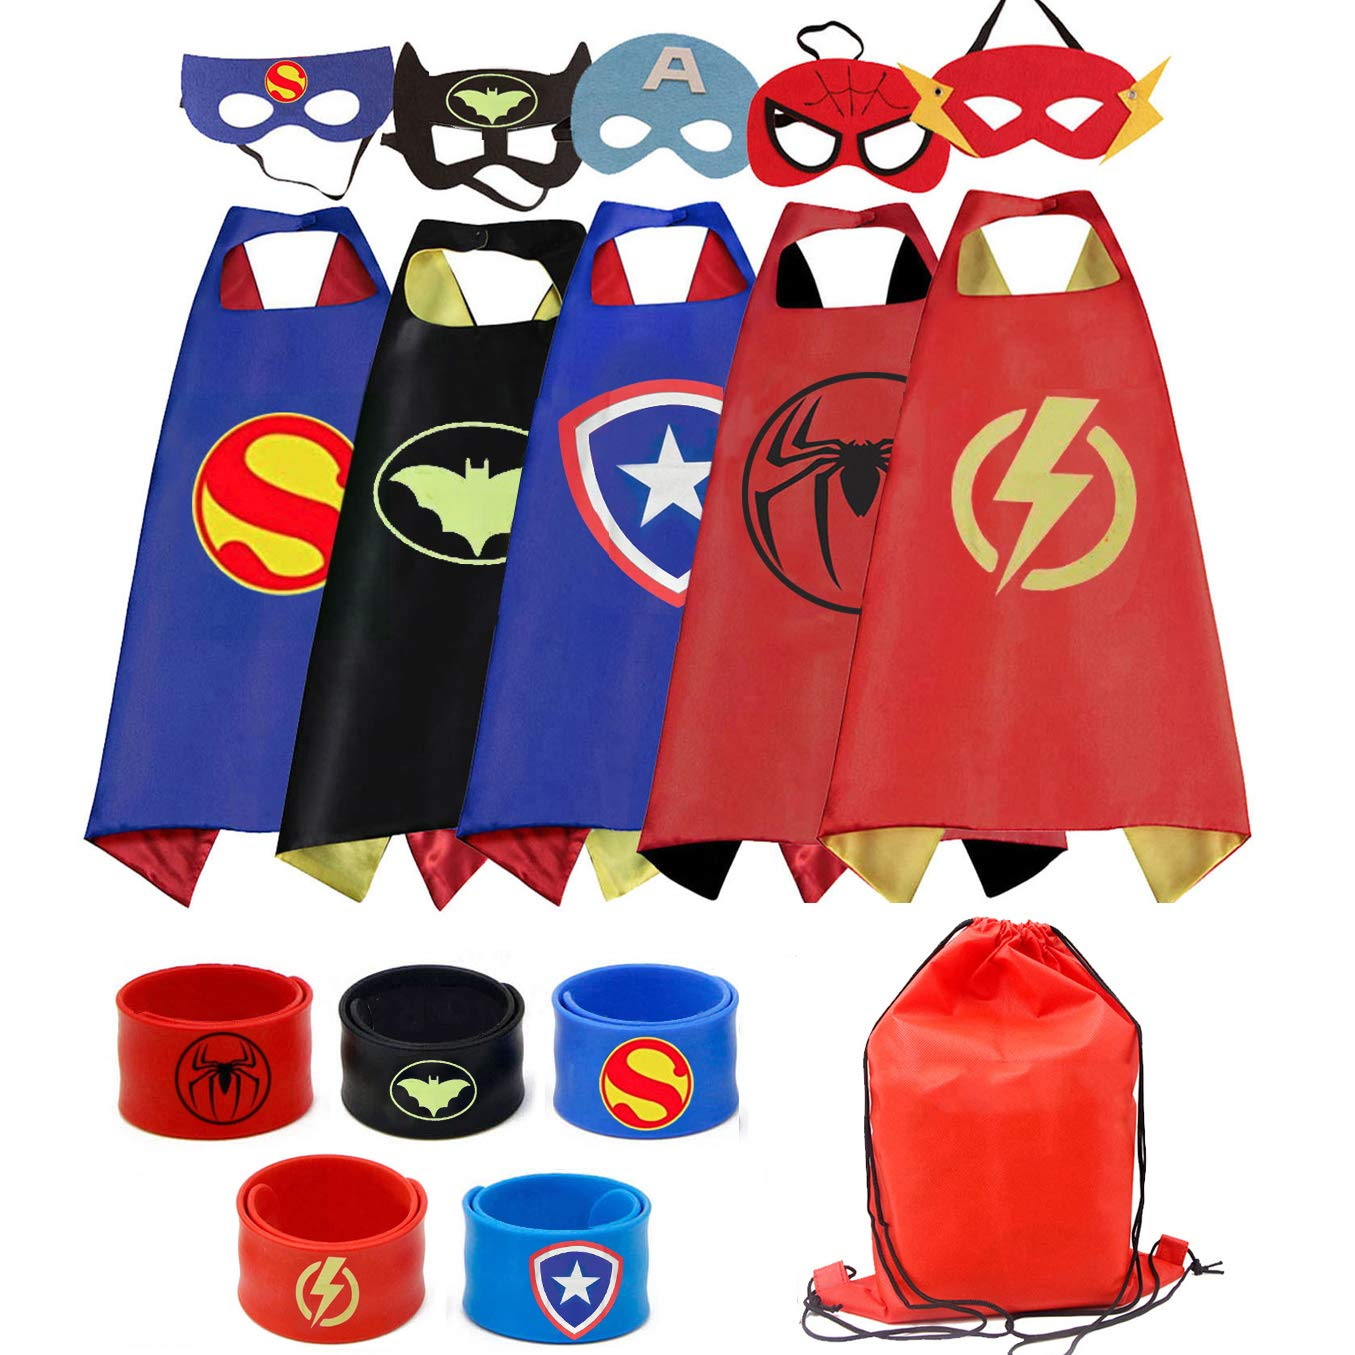 RioRand Dress Up Costumes Cartoon 5 Satin Capes Set With 5 Wristbands and 1 Carrying bag